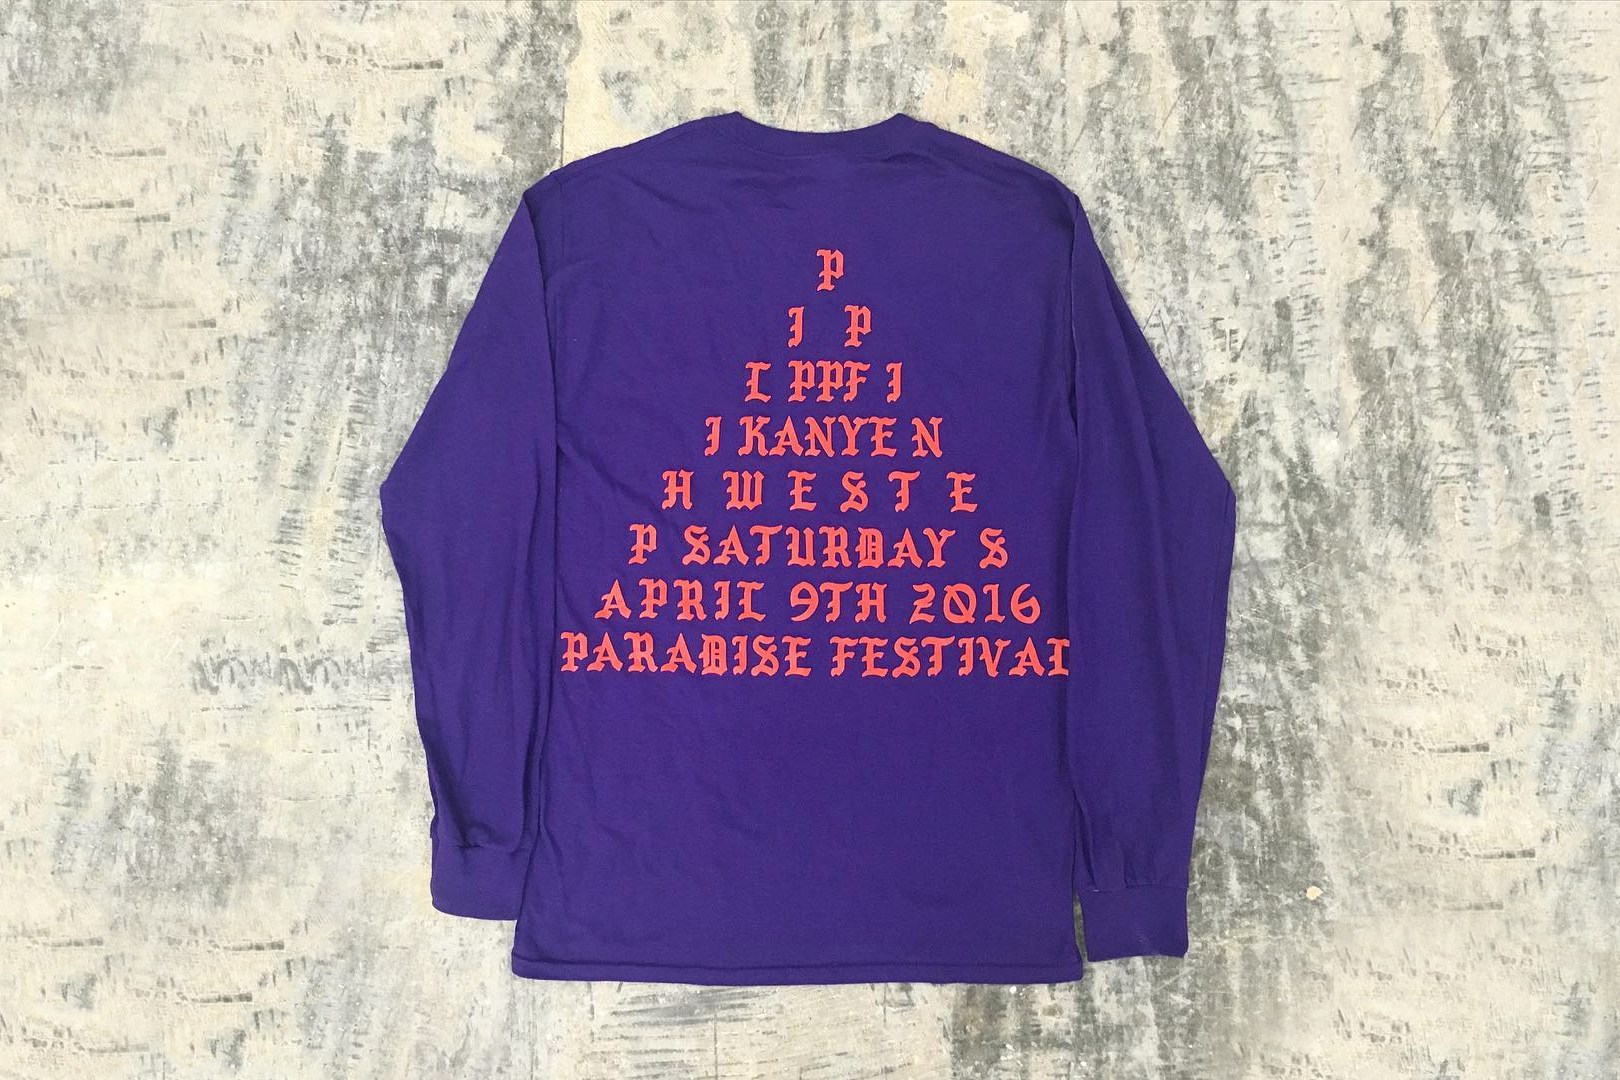 a-first-look-at-kanye-wests-paradise-music-festival-merchandise-2